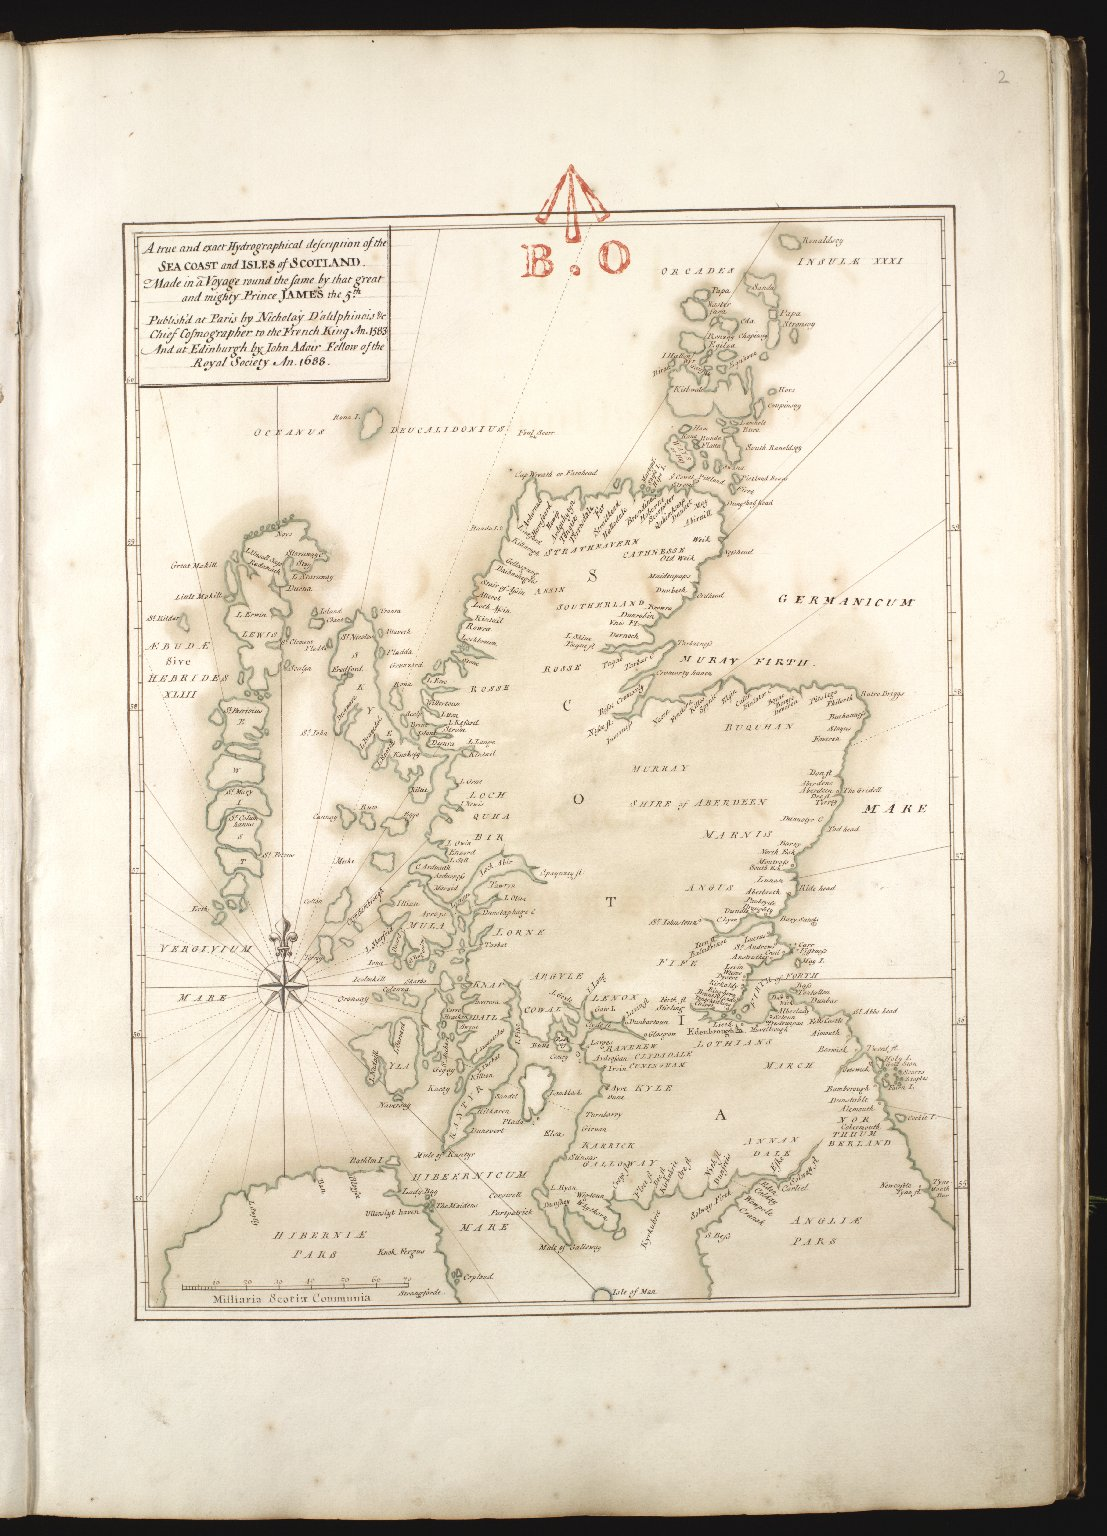 A true and exact Hydrographical description of the Sea Coast and Isles of Scotland Made in Voyage round the same by that great and mighty Prince James the 5th. [mansucript copy] [1 of 1]